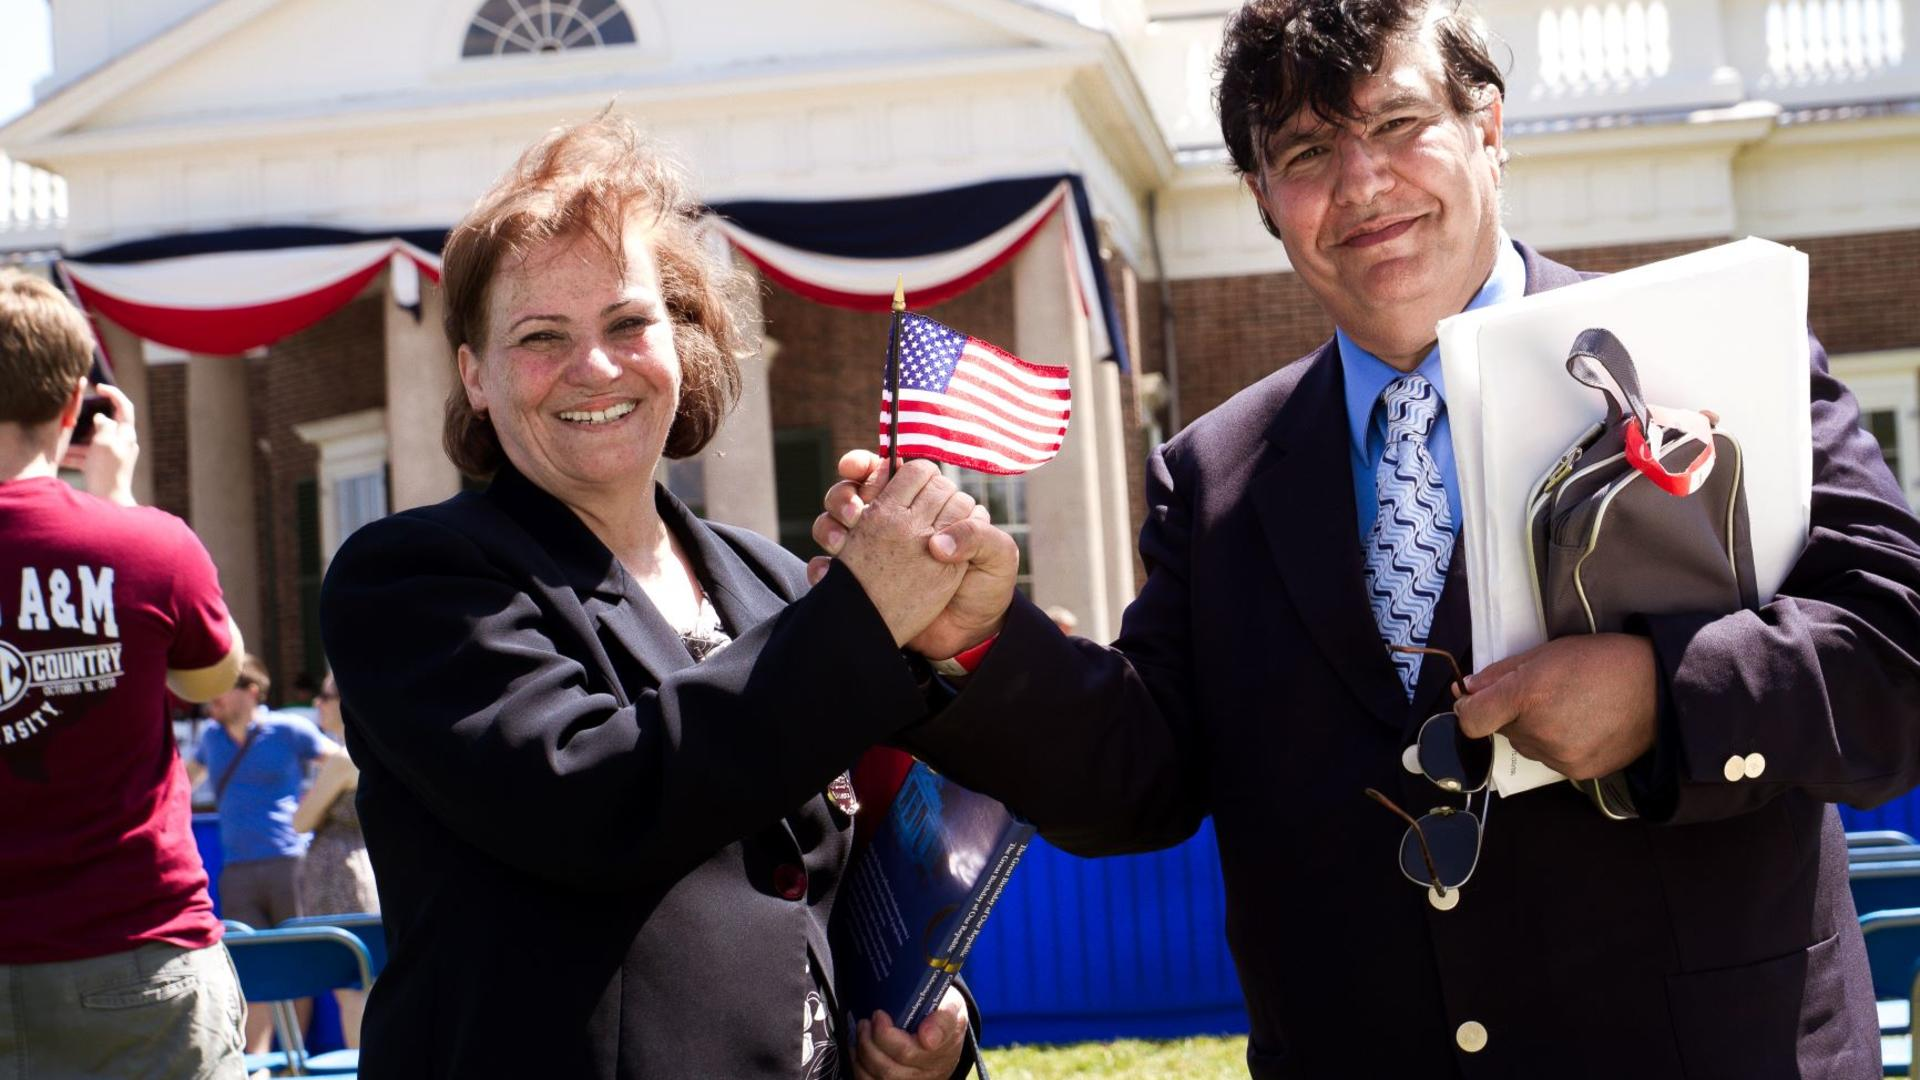 Two refugees hold an American flag at a citizenship ceremony.